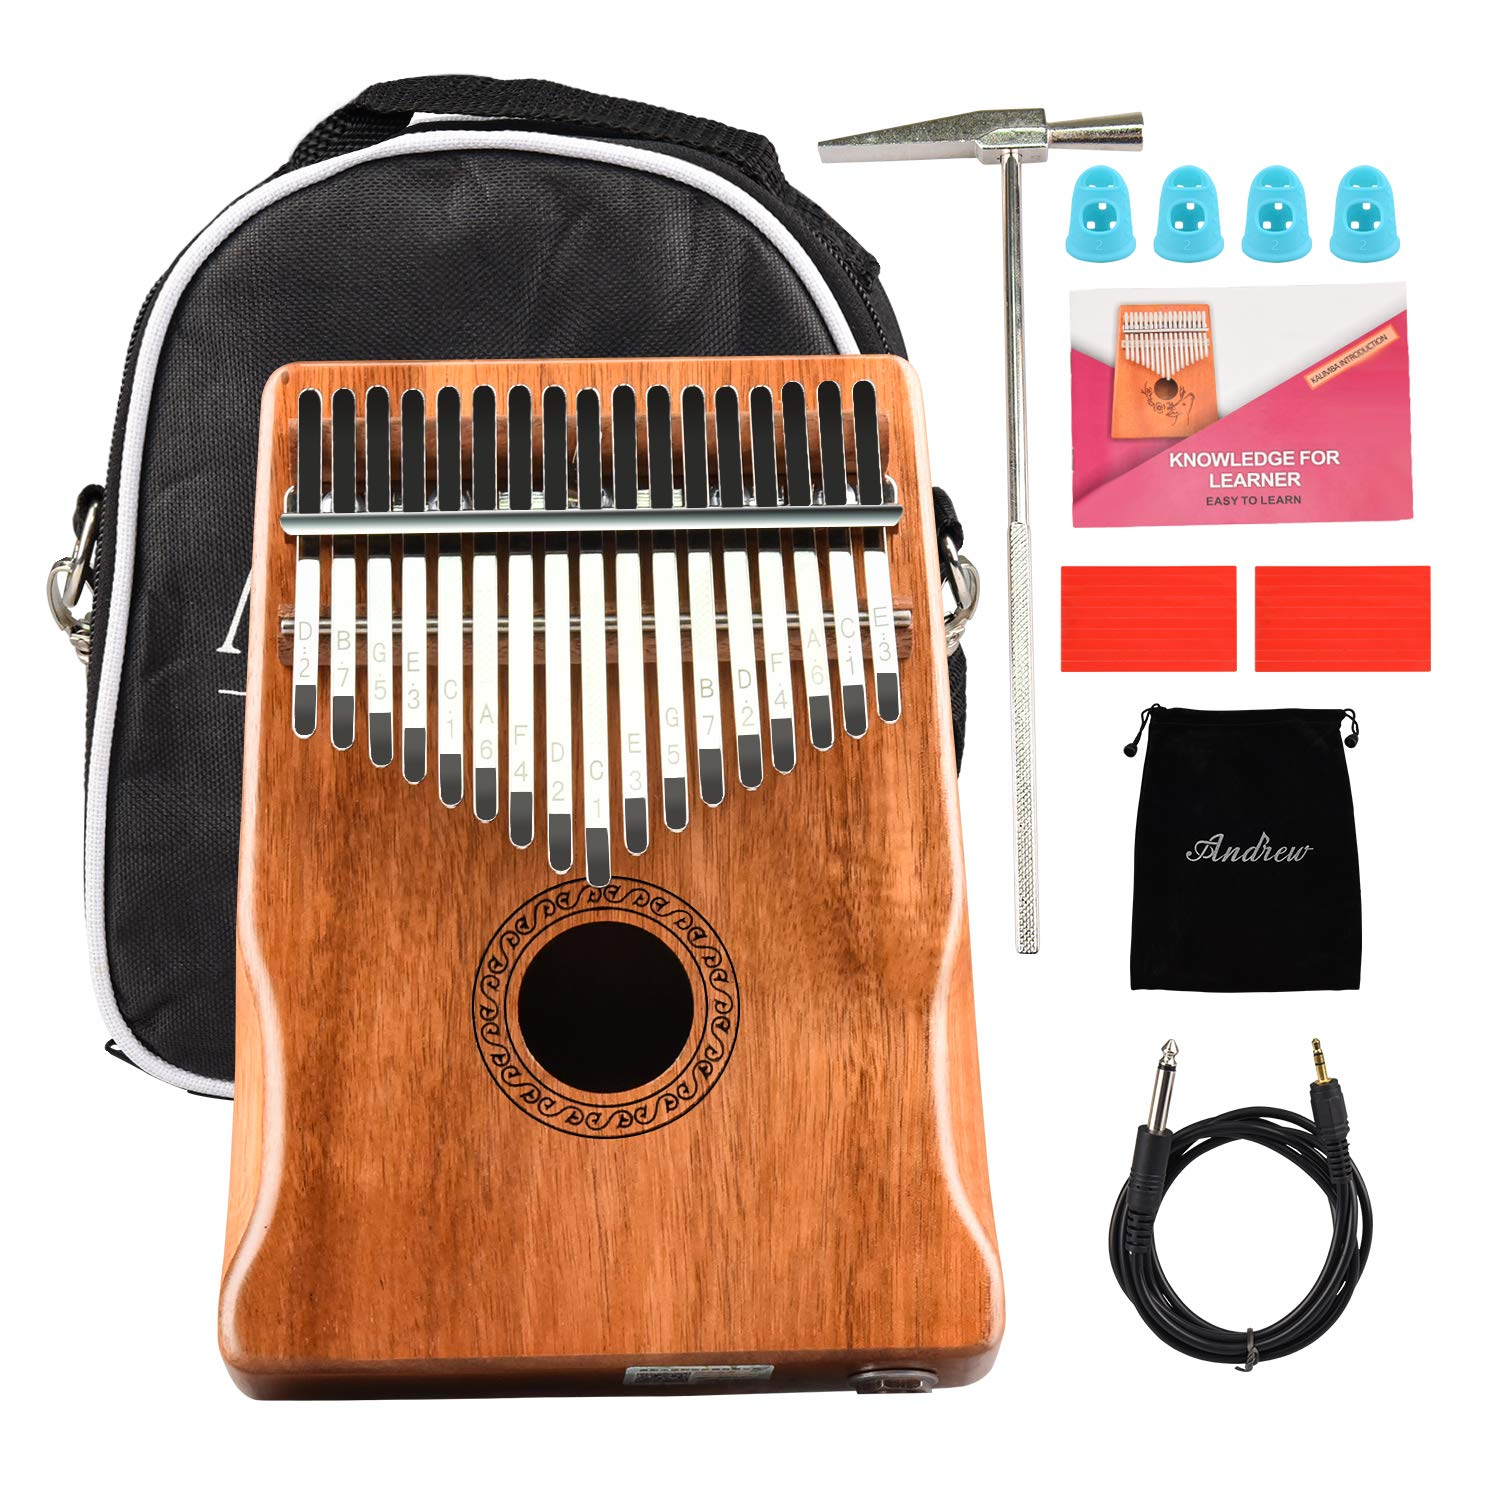 Kalimba Thumb Piano 17 keys Mbira Kit Acacia KOA Electric Finger Music Instrument Bulit-in Pickup with 6.35mm Audio Interface for Beginner Kids by GOMILE